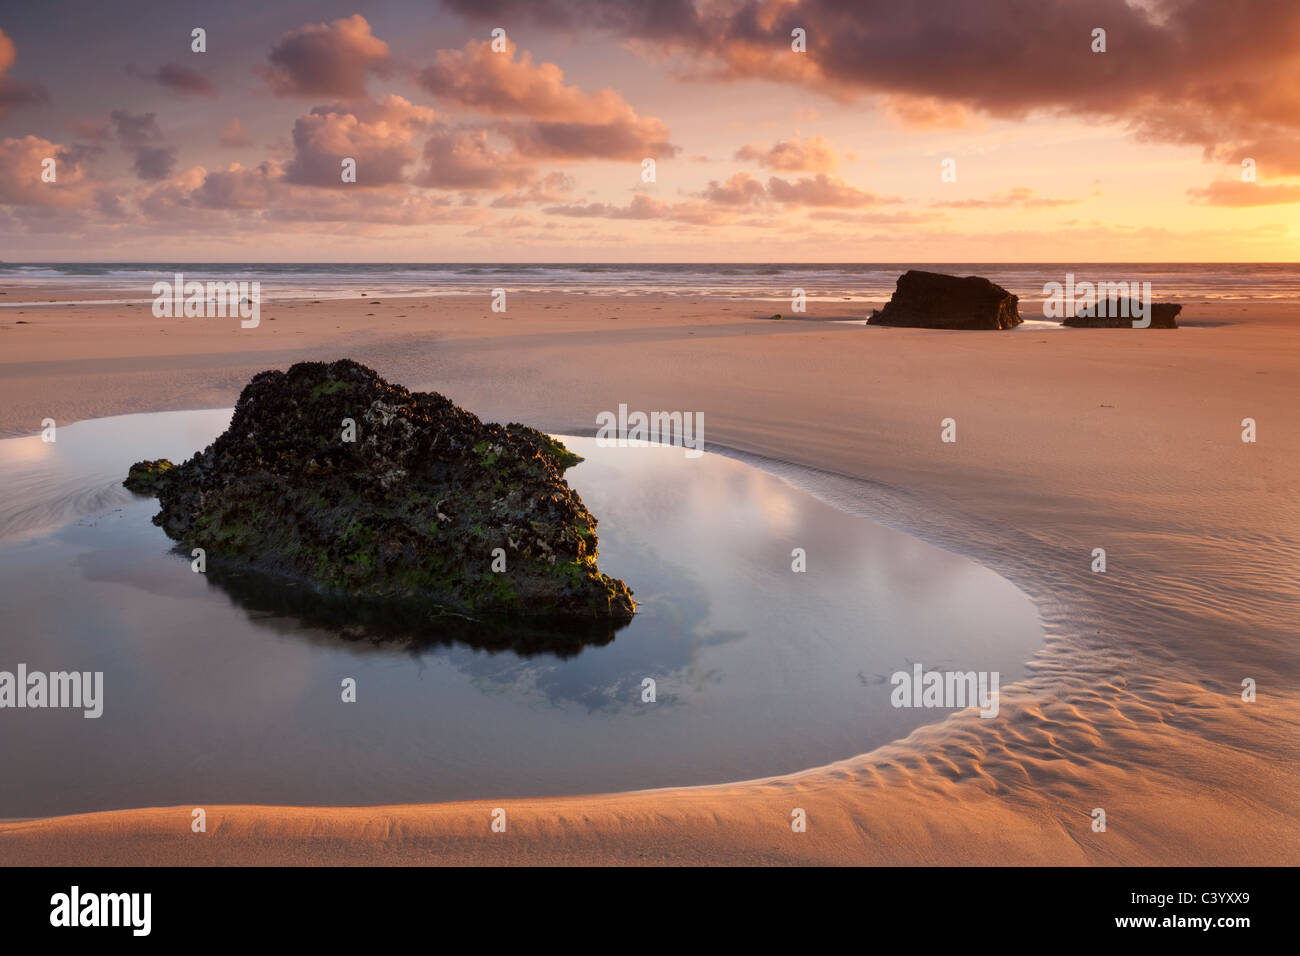 Rockpools on a deserted sandy bech at sunset, Bedruthan Steps, Cornwall, England. Spring (May) 2011. - Stock Image